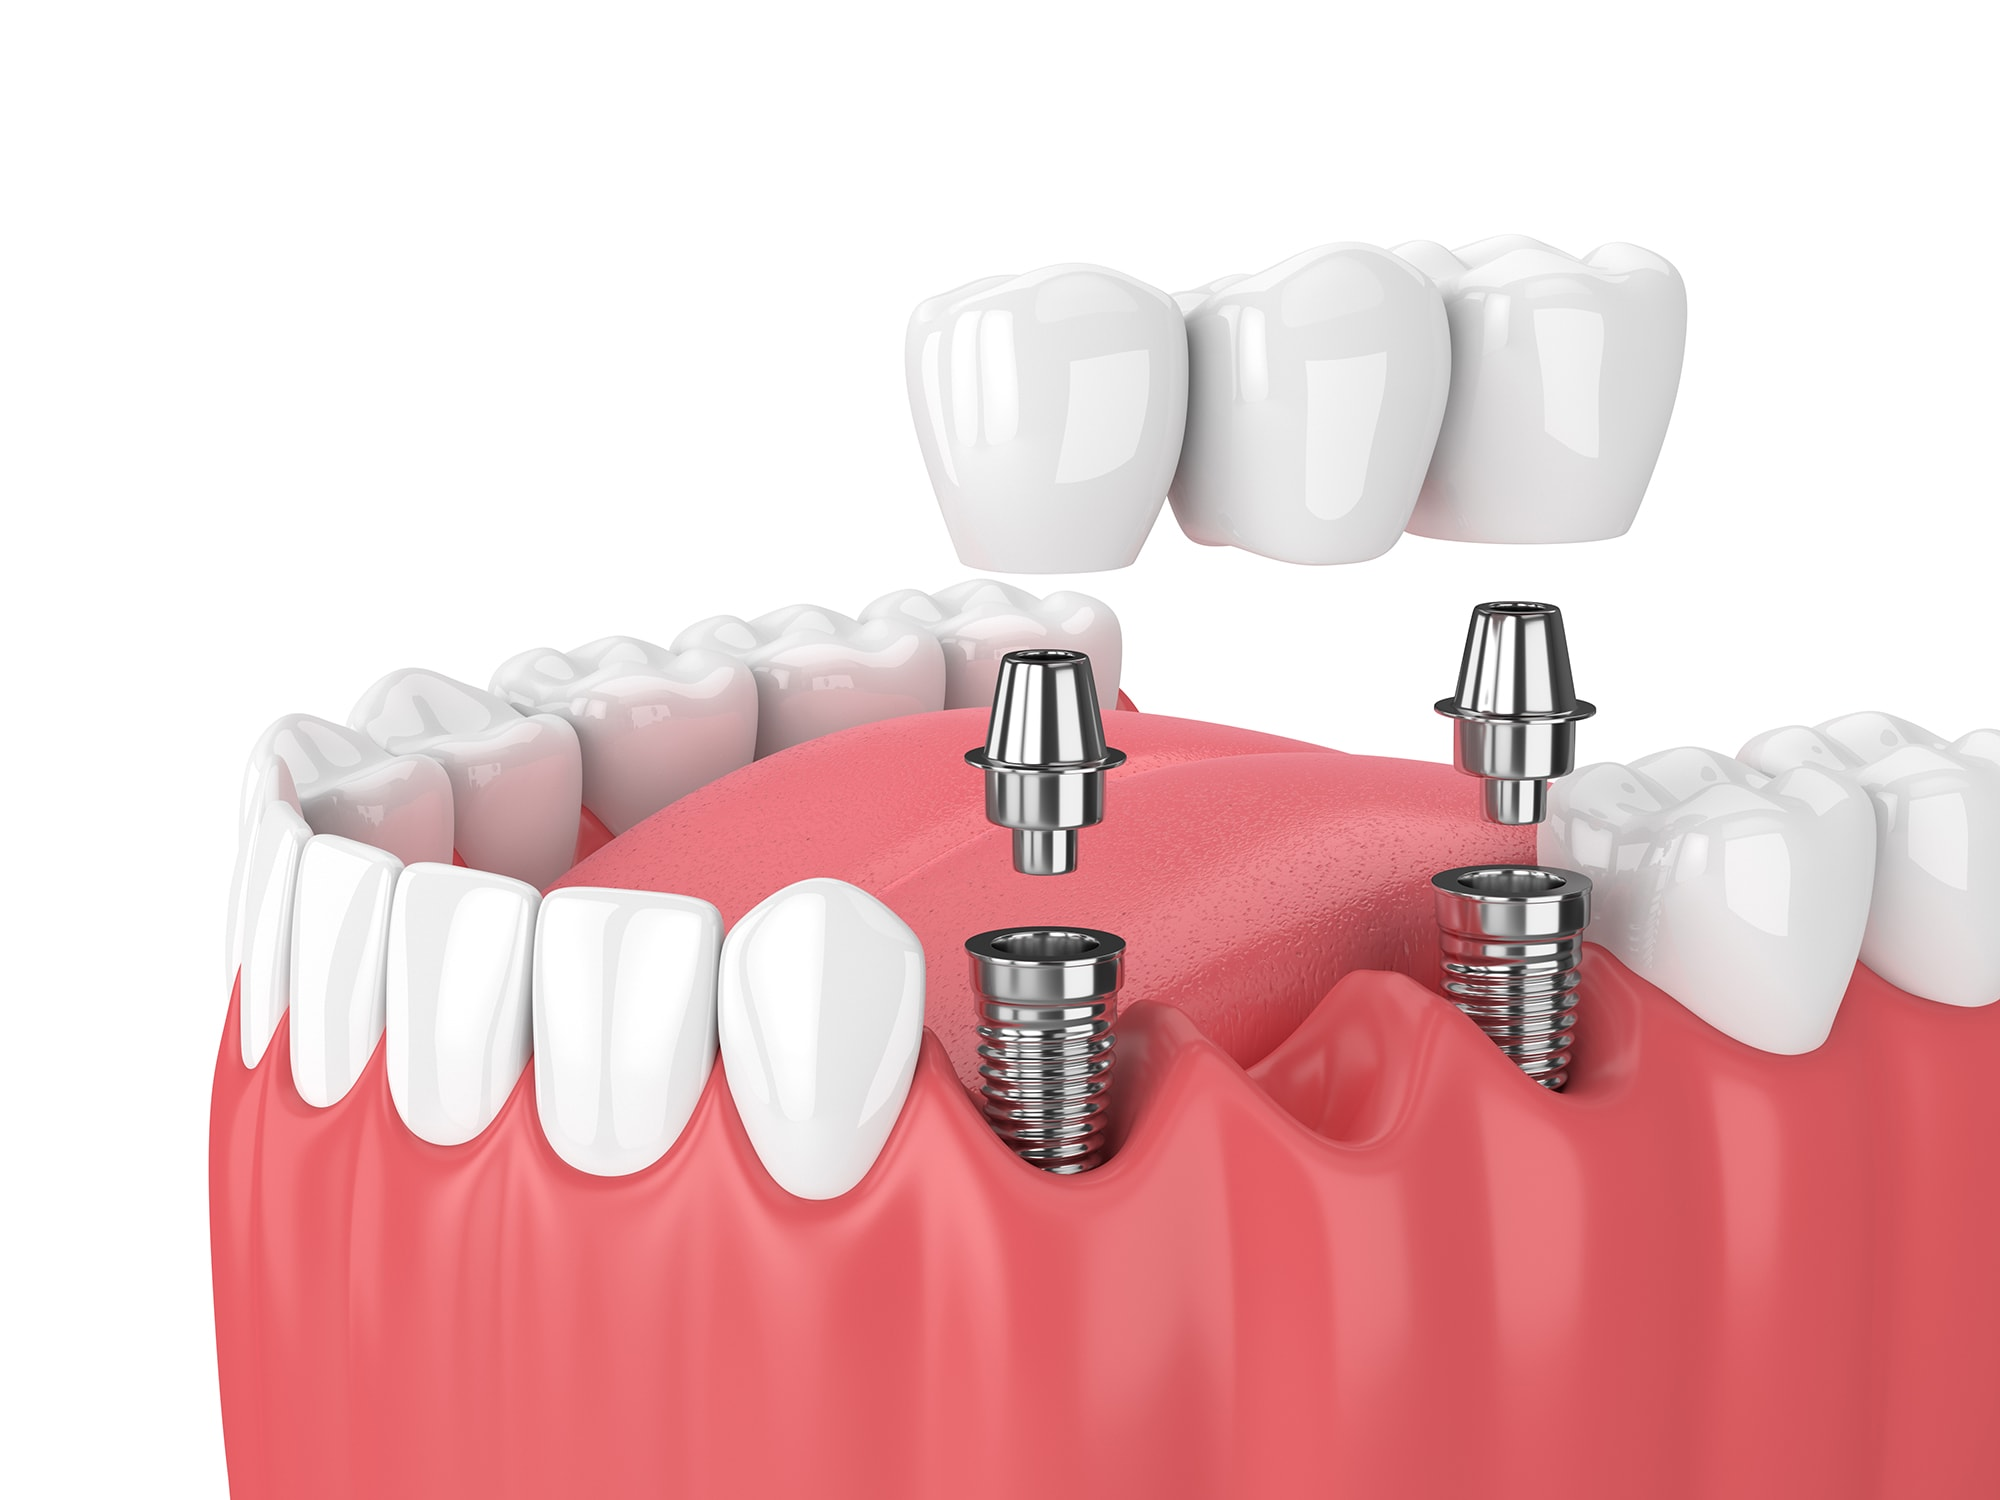 The Right Time To Get Hold Of Affordable Dental Implants In Sydney